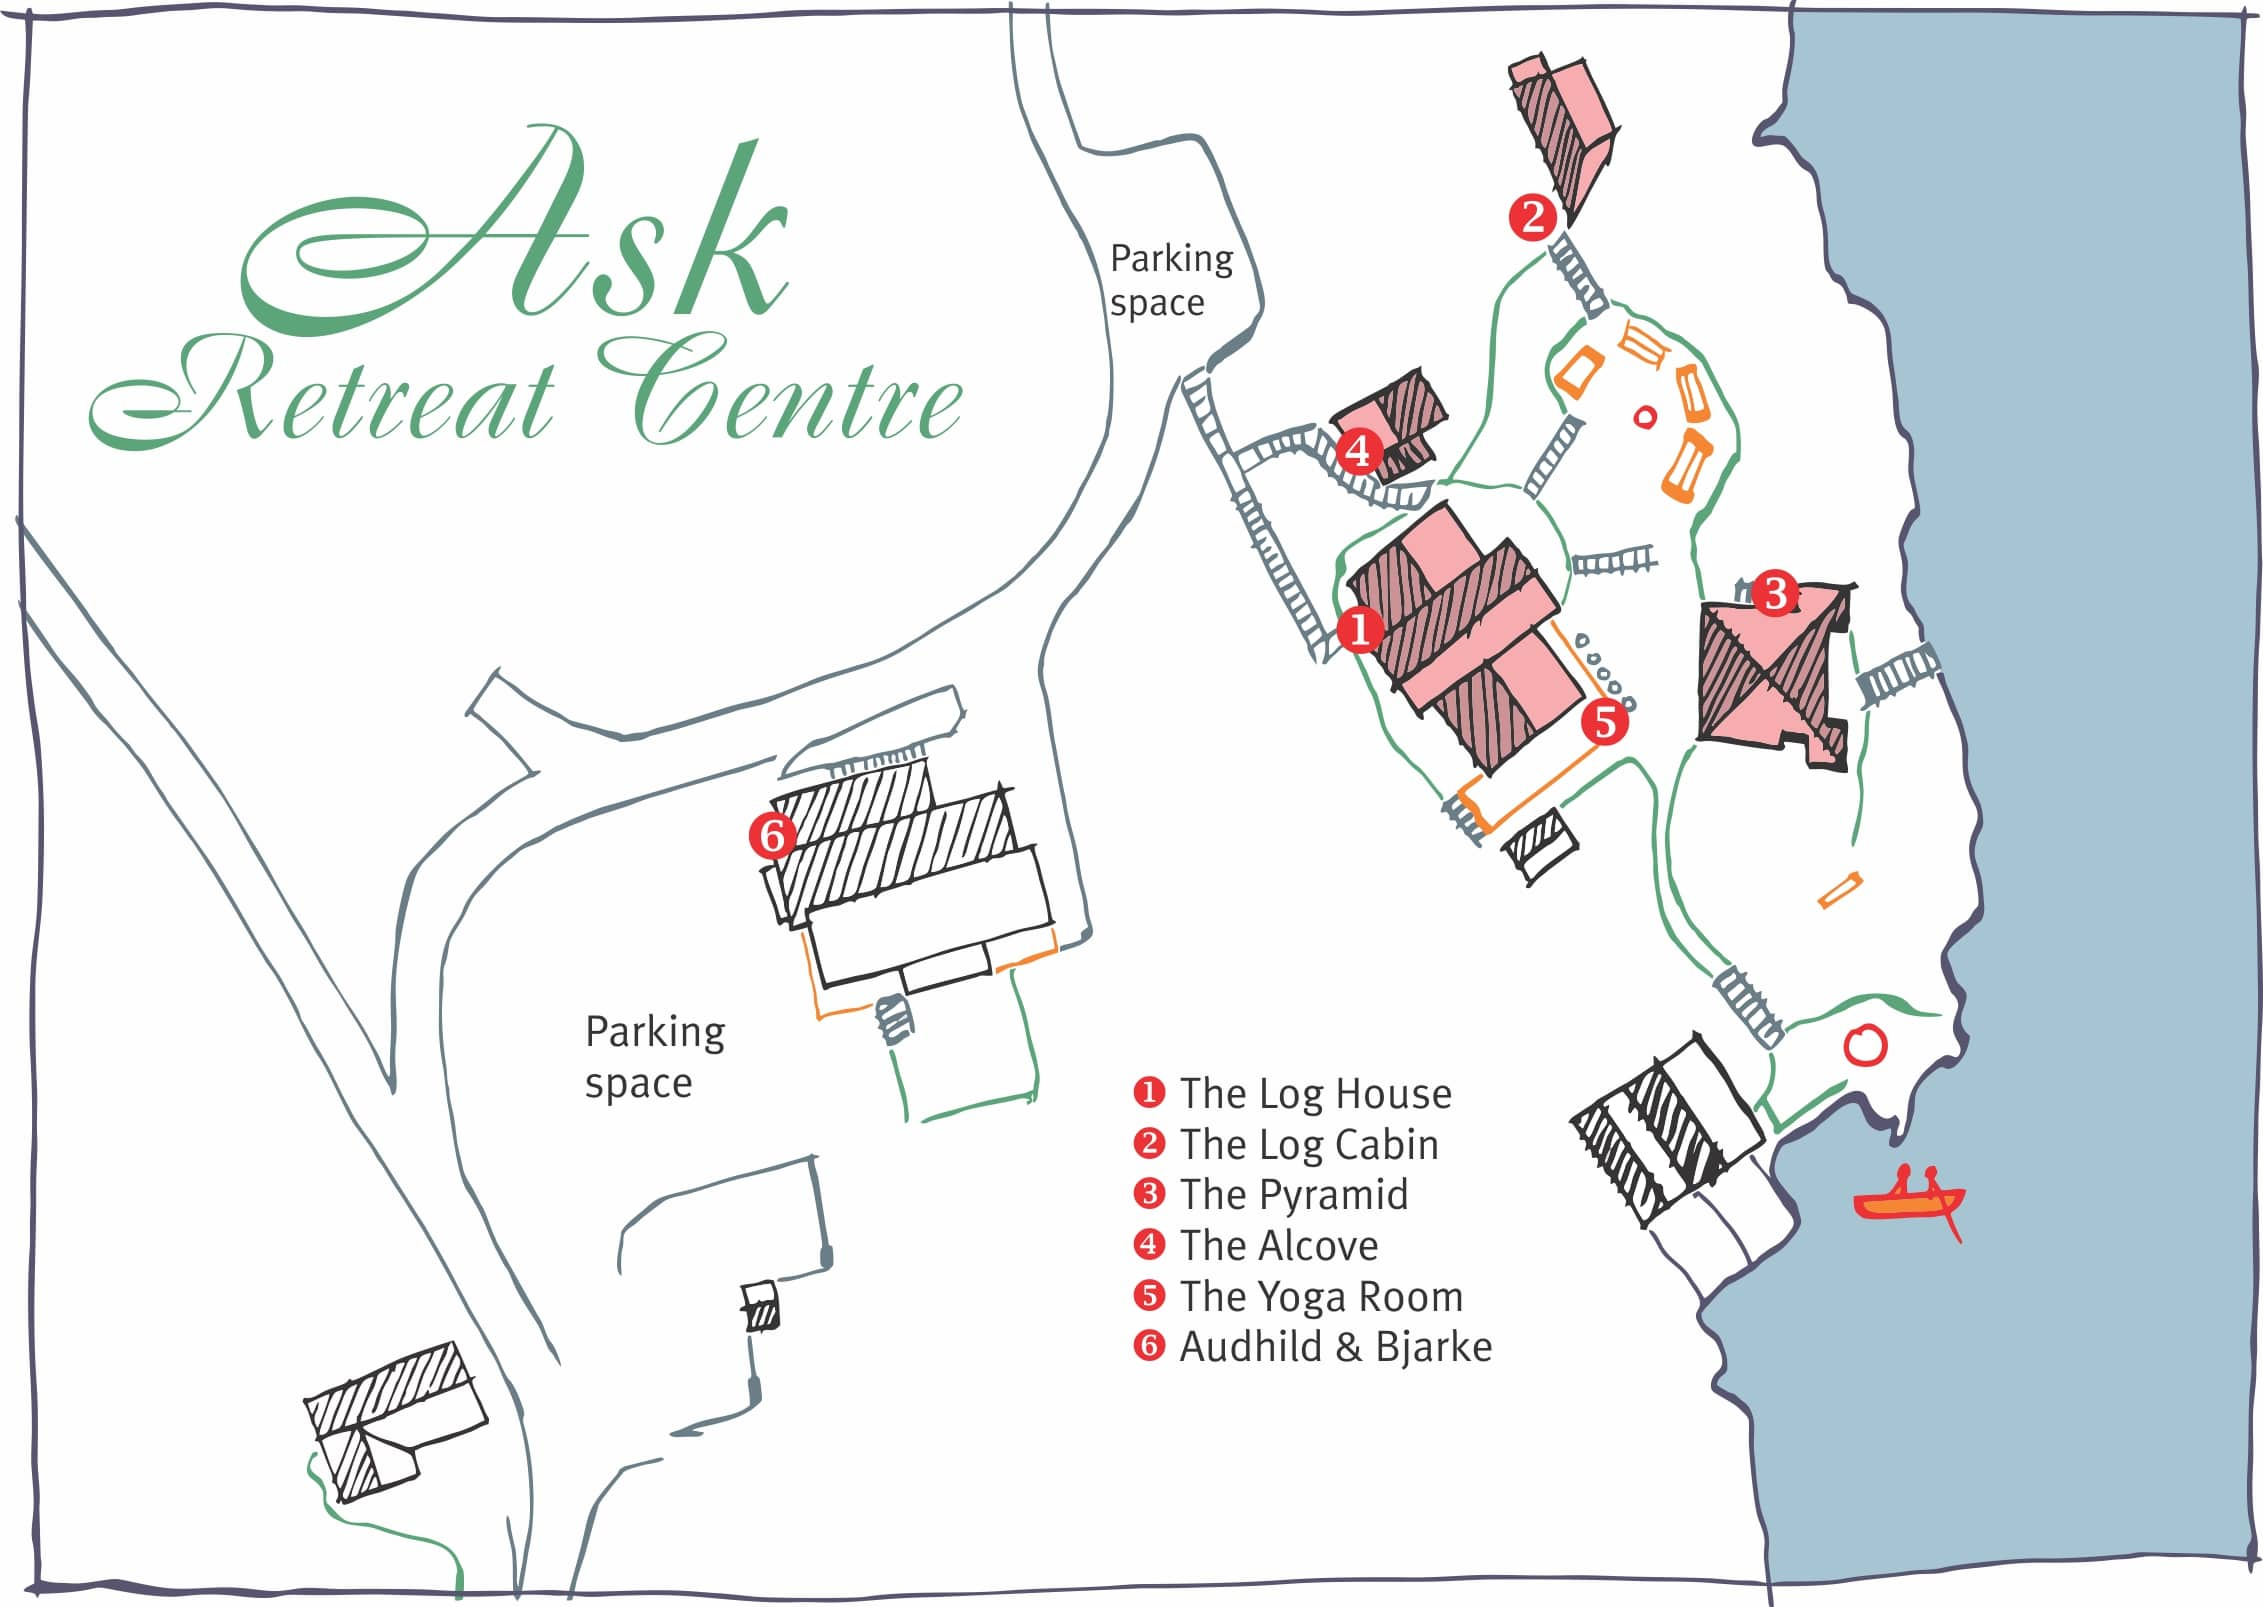 Map of Ask retreat Centre 2020